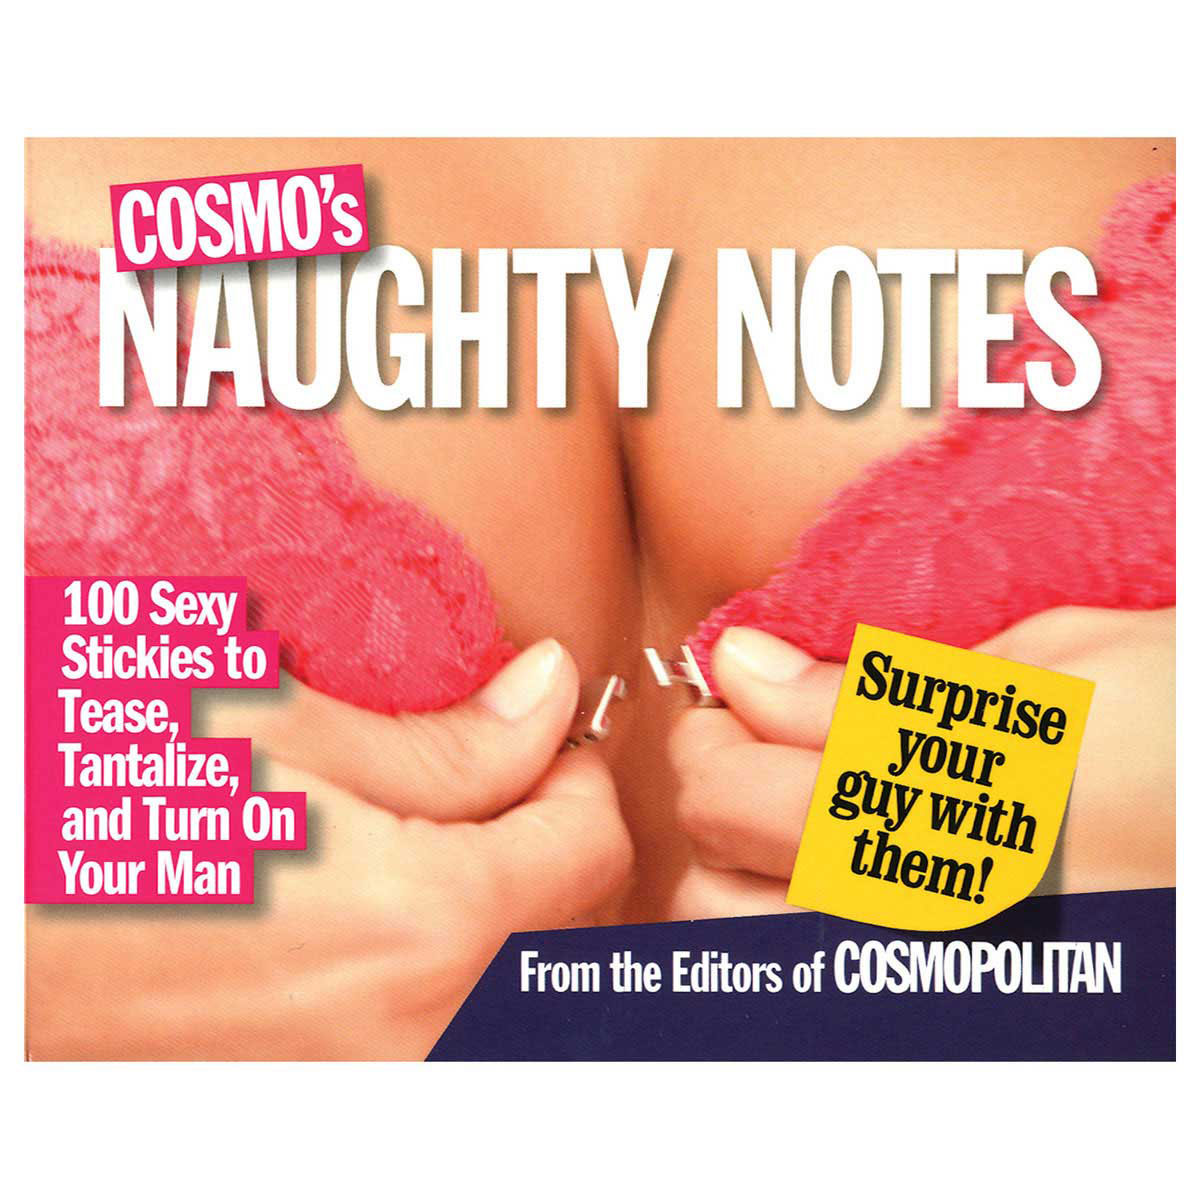 Cosmo's Naughty Notes - 100 Sexy Stickies to Tease, Tantalize, and Turn On Your Man - Cosmopolitan